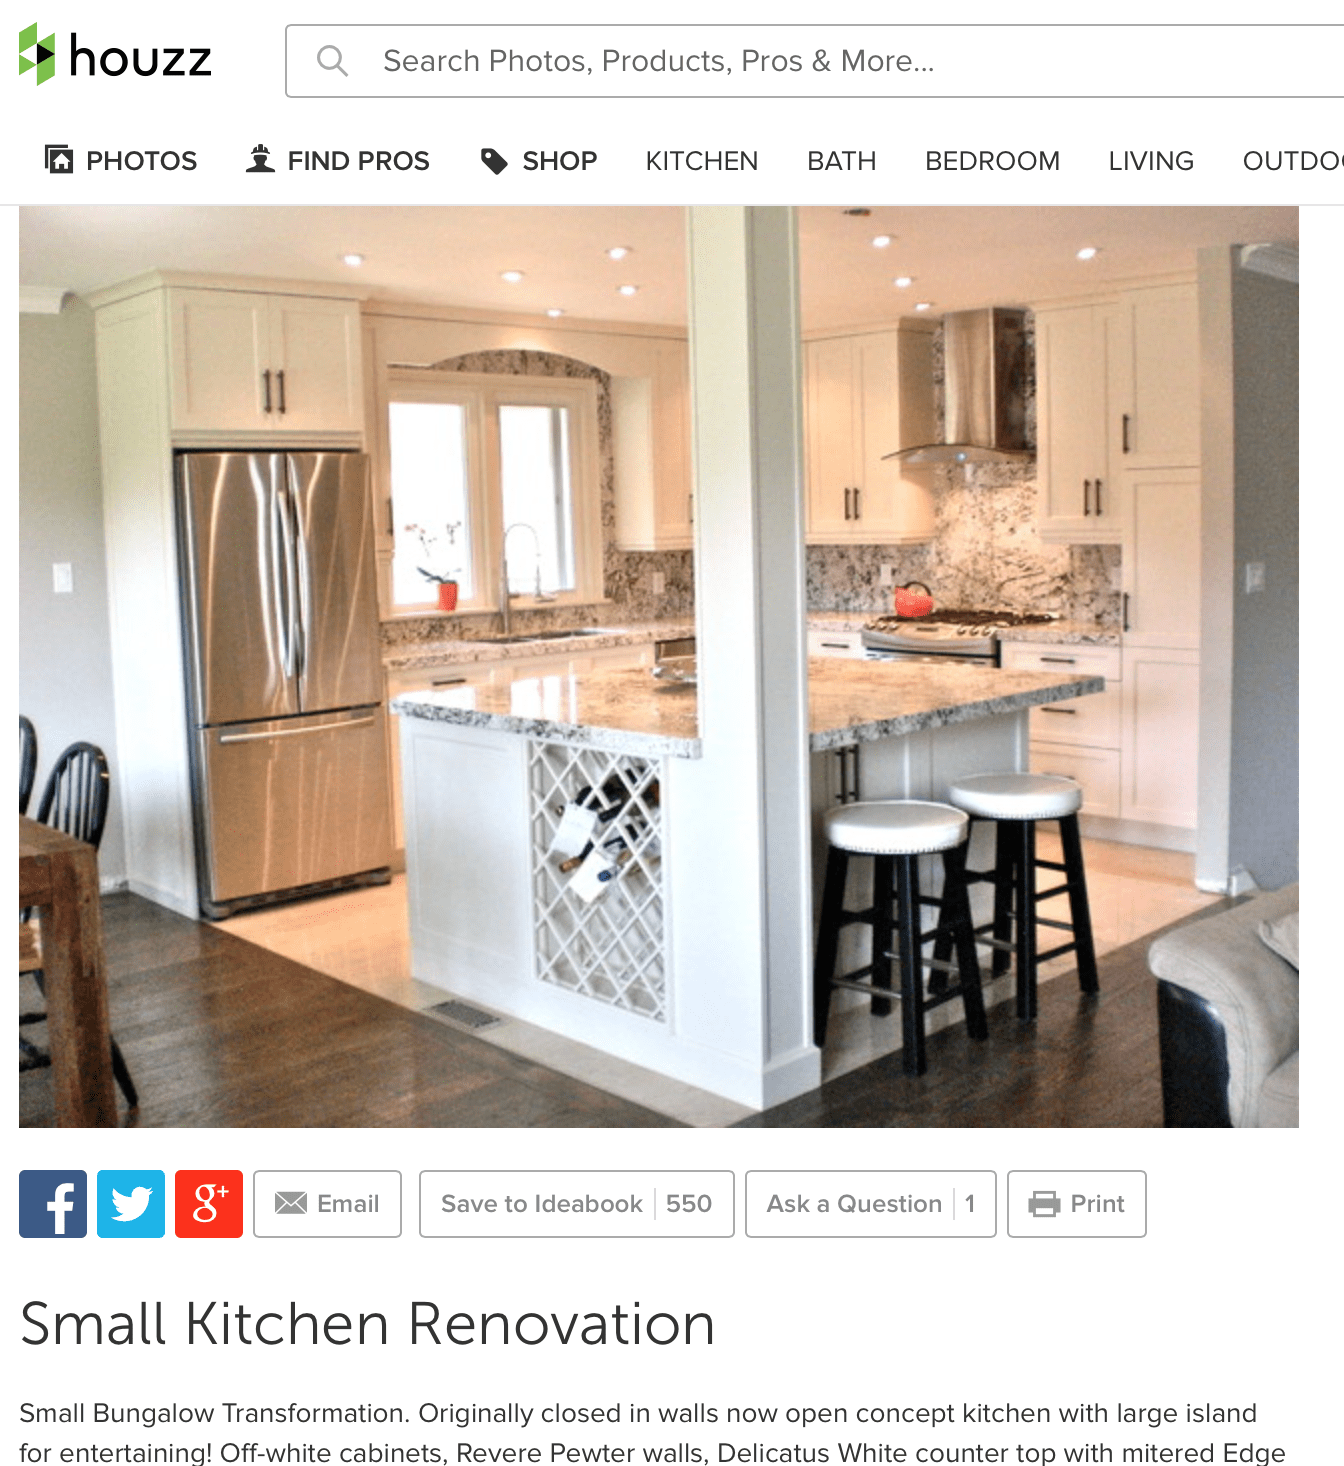 This Is IT!!! The Small Kitchen Reno I Have Been Looking For